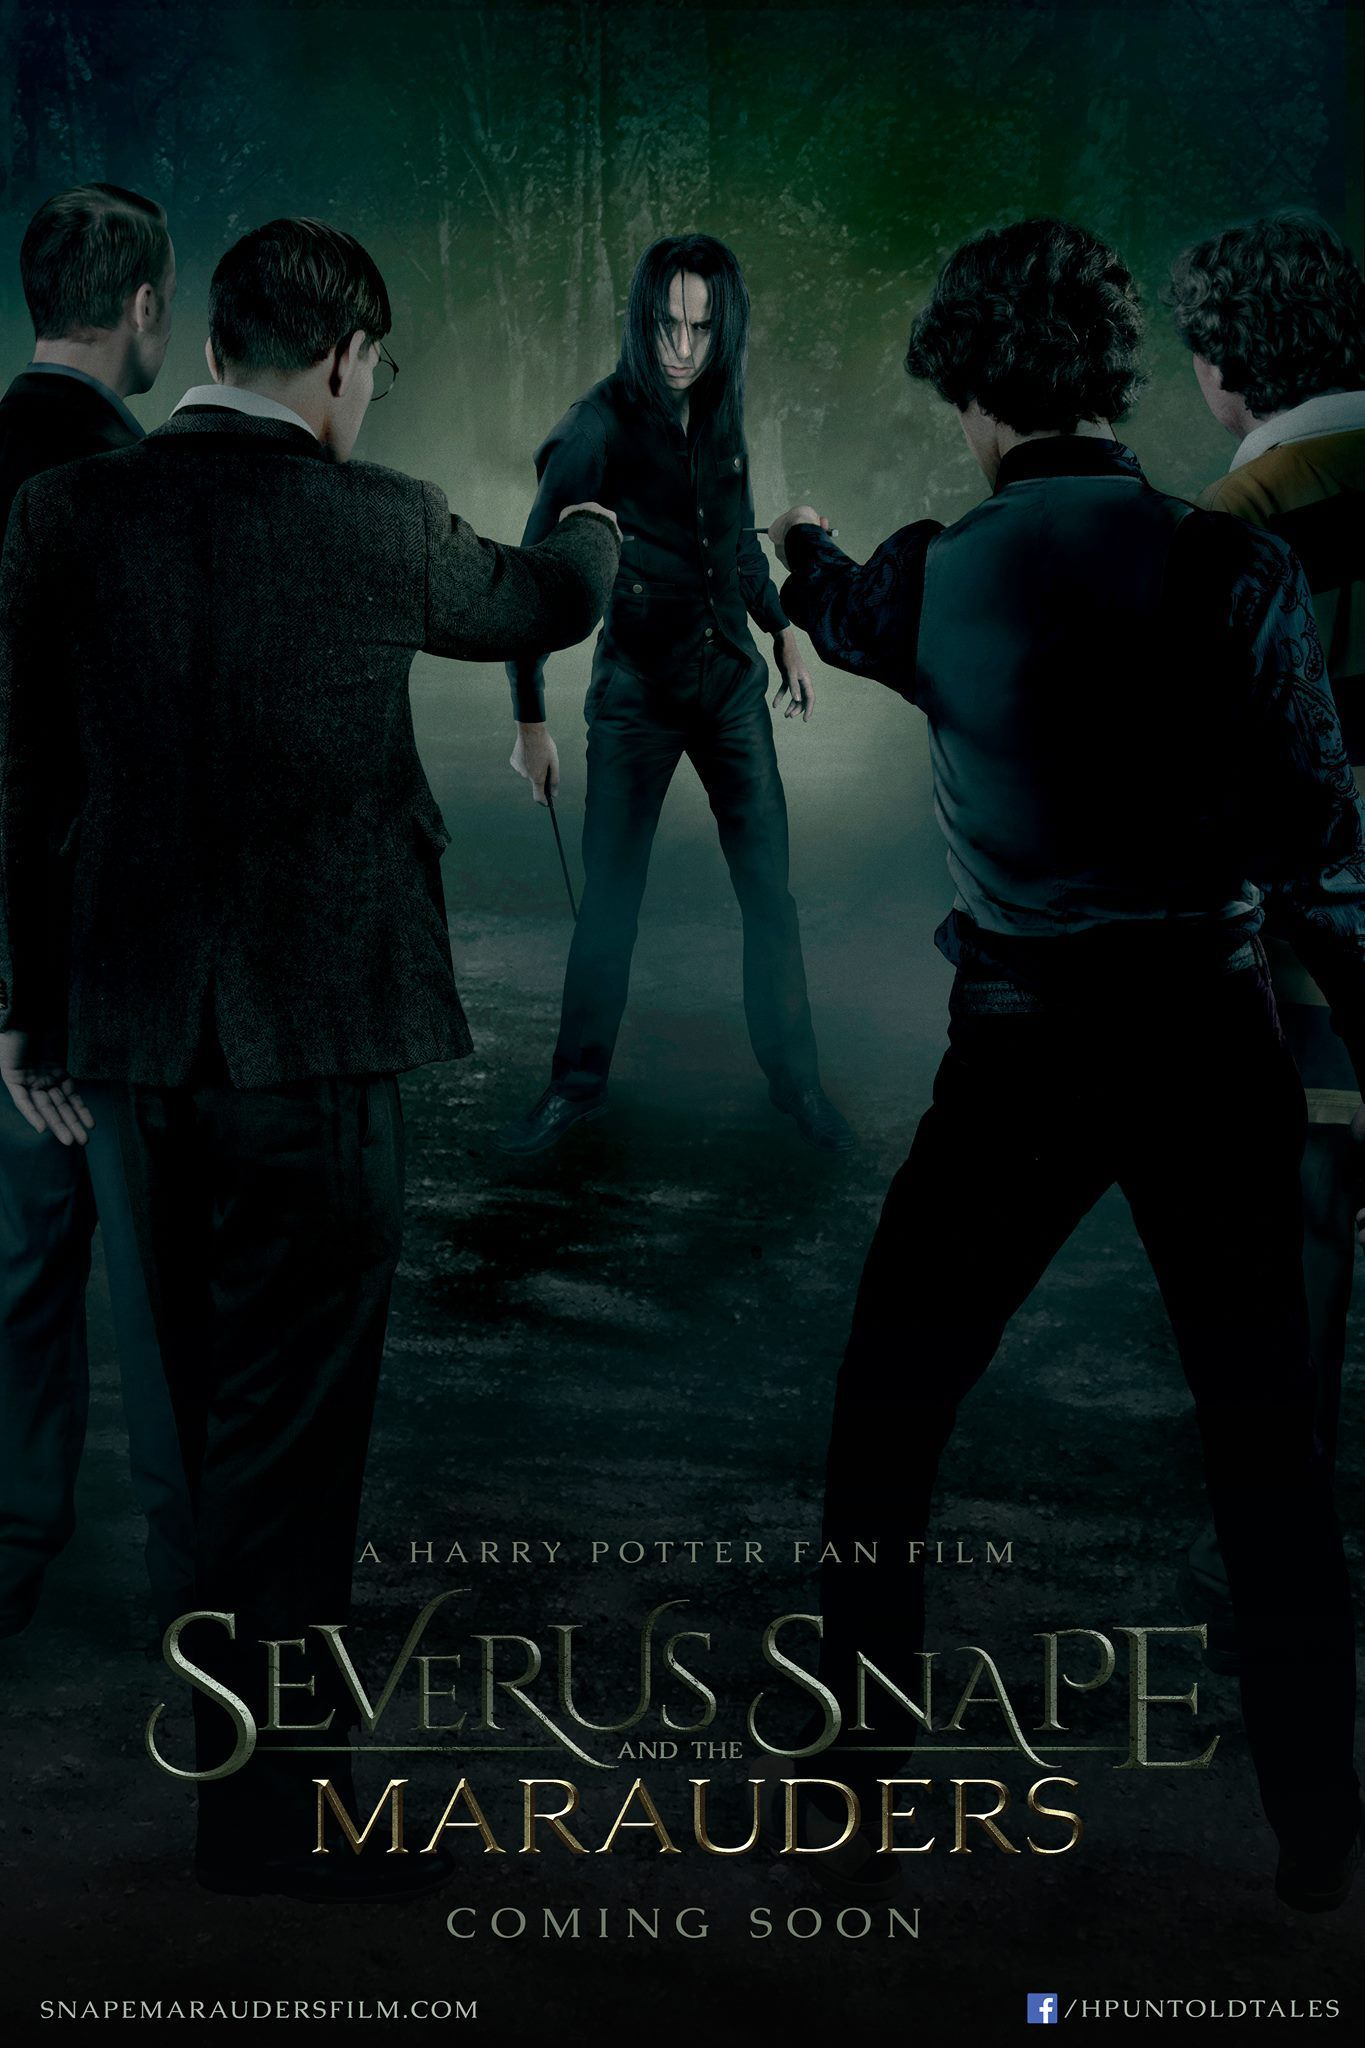 Severus Snape And The Marauders Trailer For New Harry Potter Fan Film Harry Potter Filme Atores De Harry Potter Desenhos Harry Potter